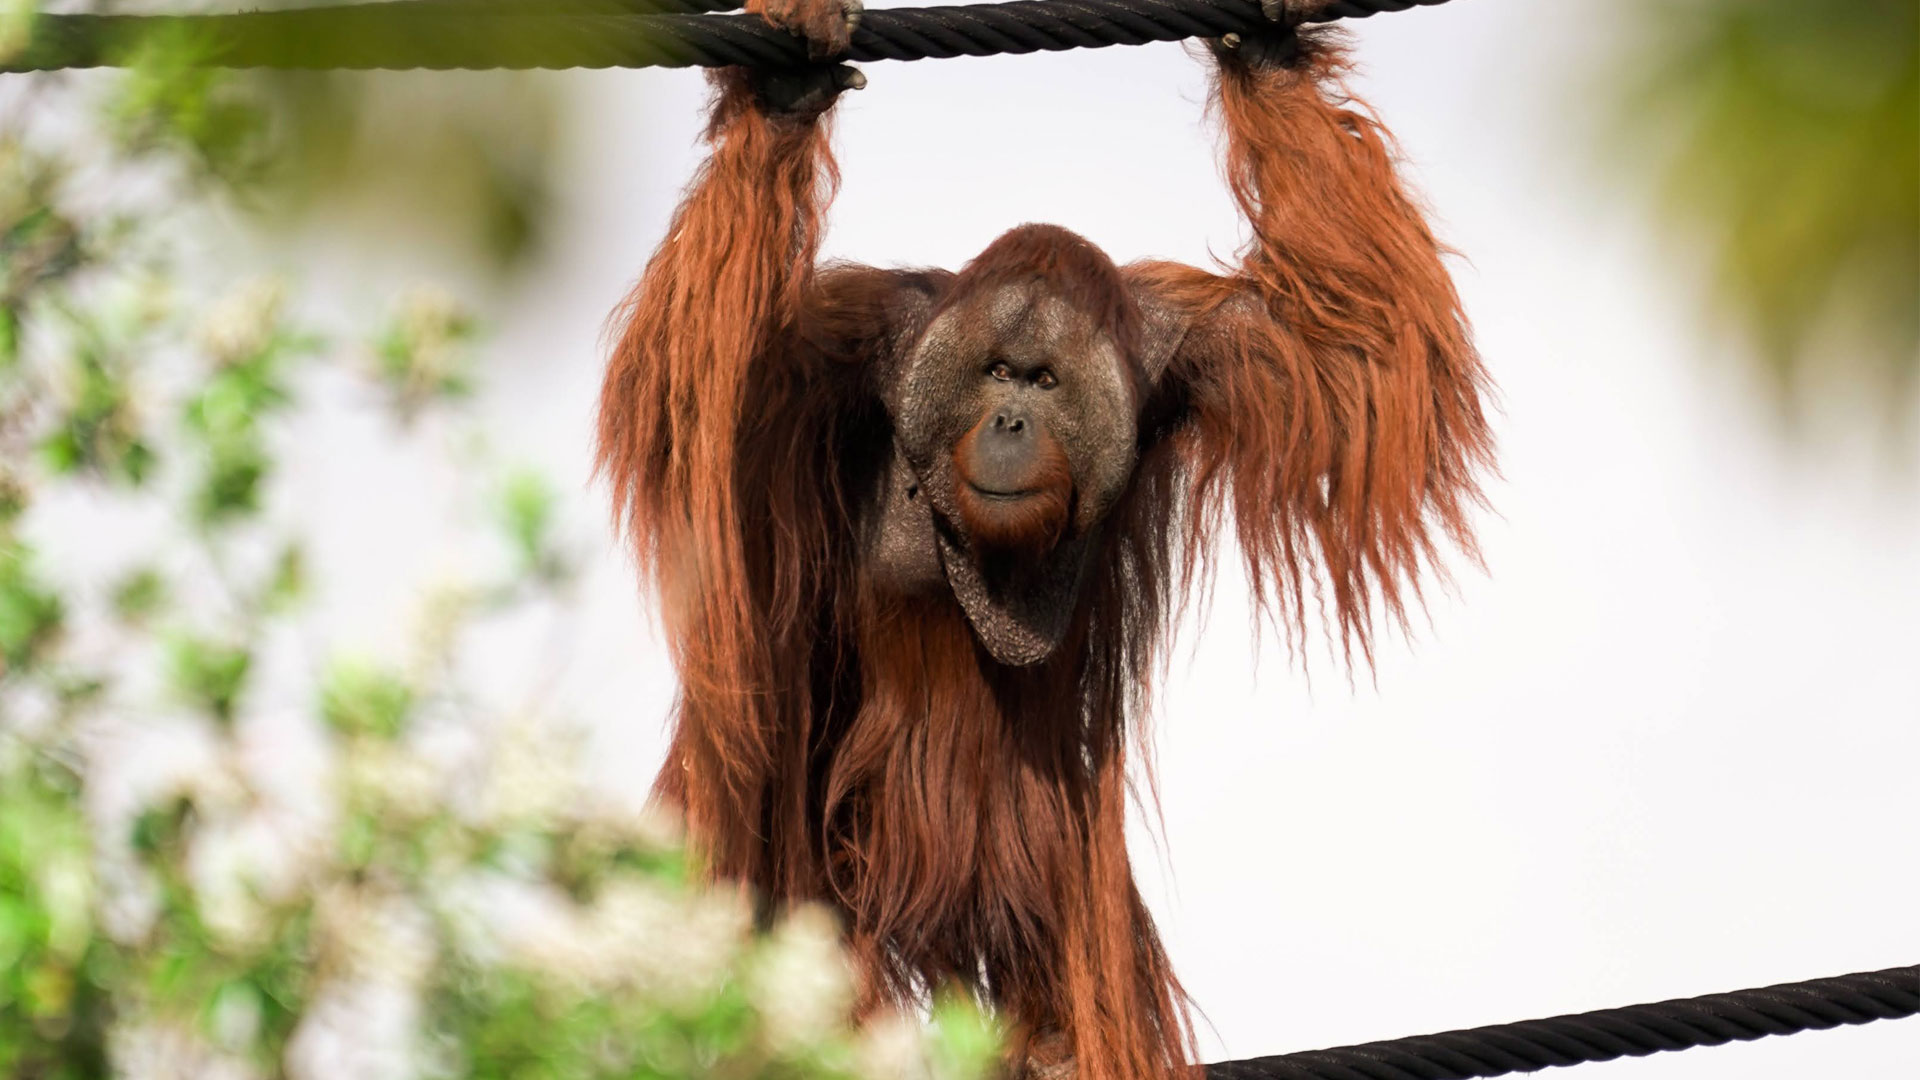 https://rfacdn.nz/zoo/assets/media/orangutans-aerial-pathways-gallery-3.jpg